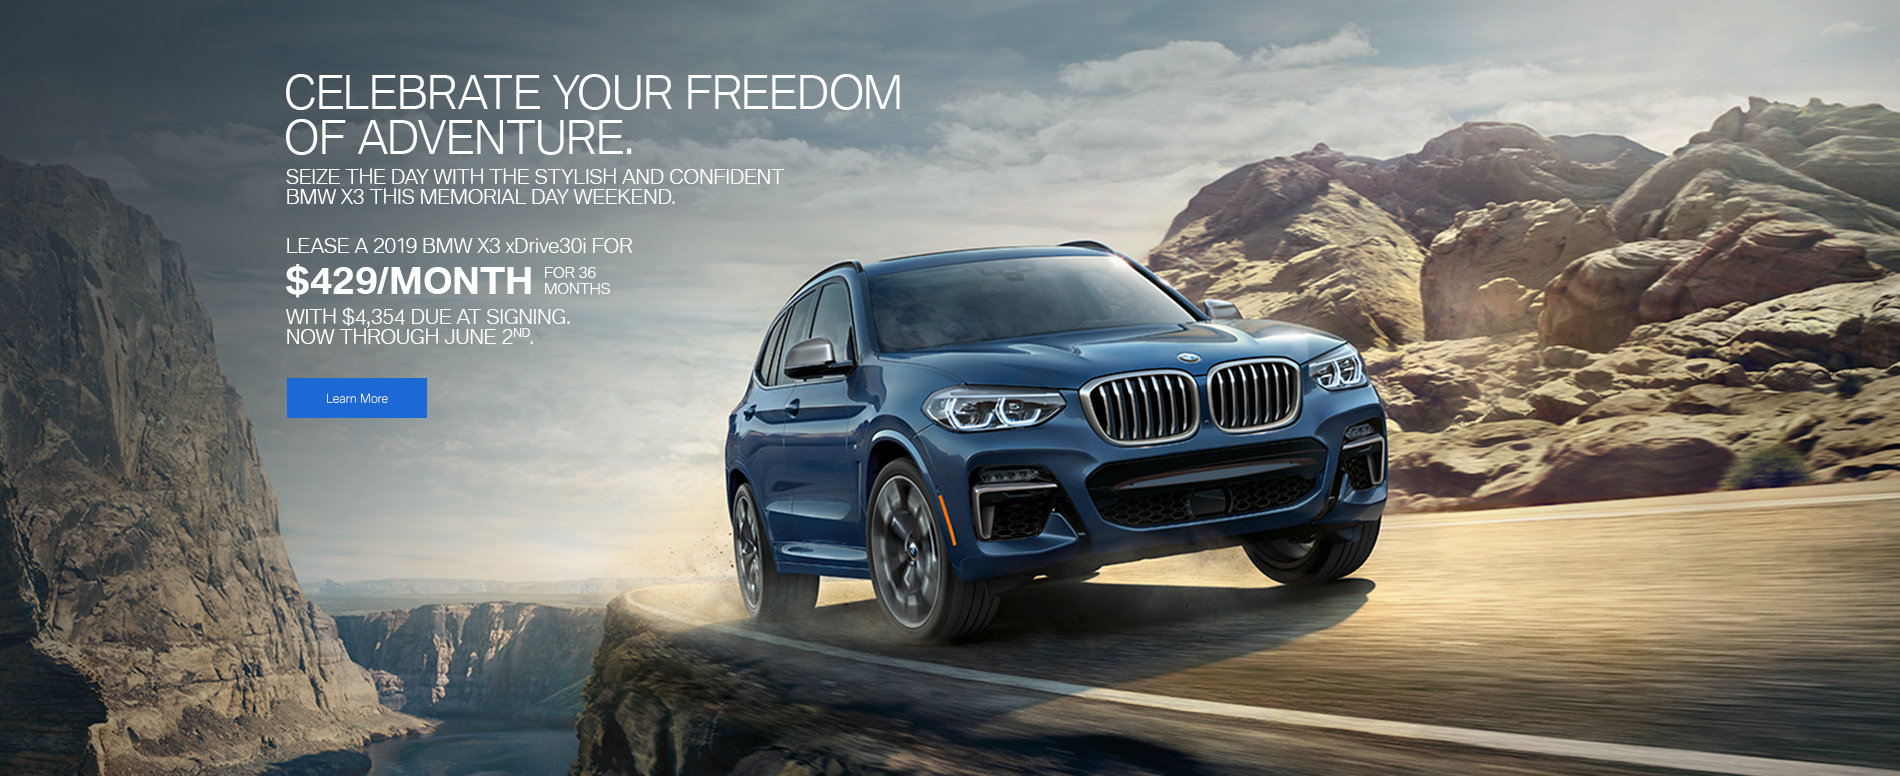 2019 BMW X3 Memorial Day